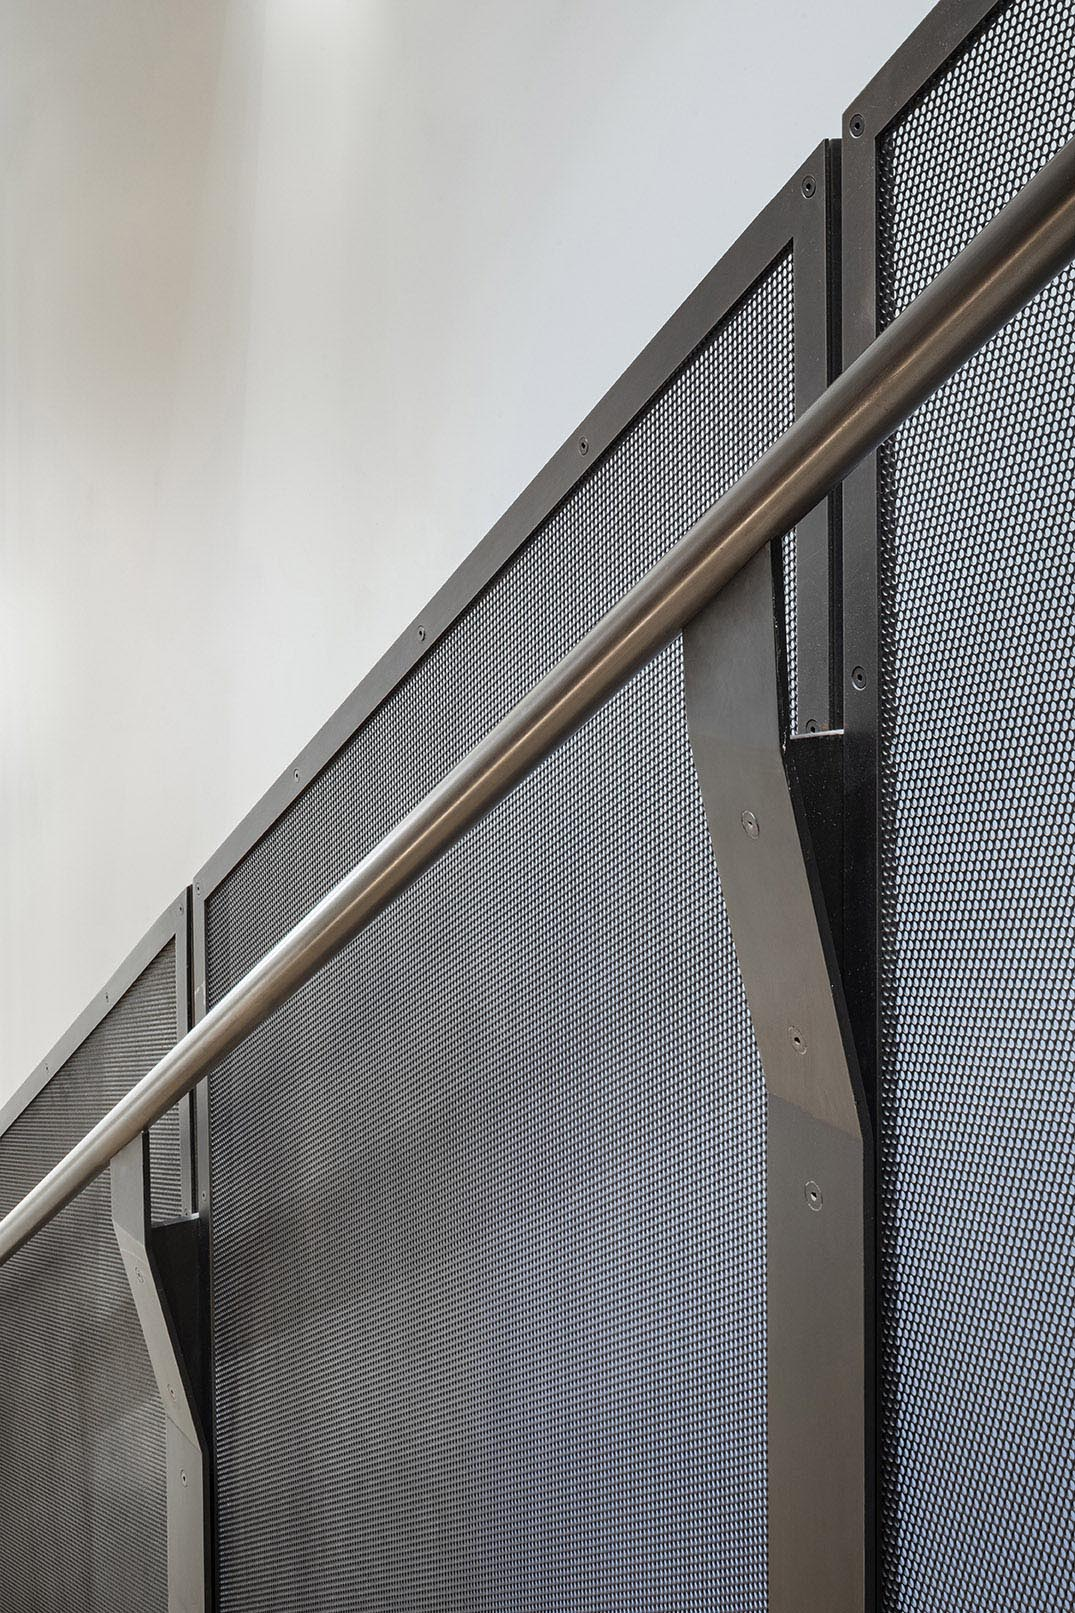 Blackened steel stair detail. Photography, Michael Moran / OTTO